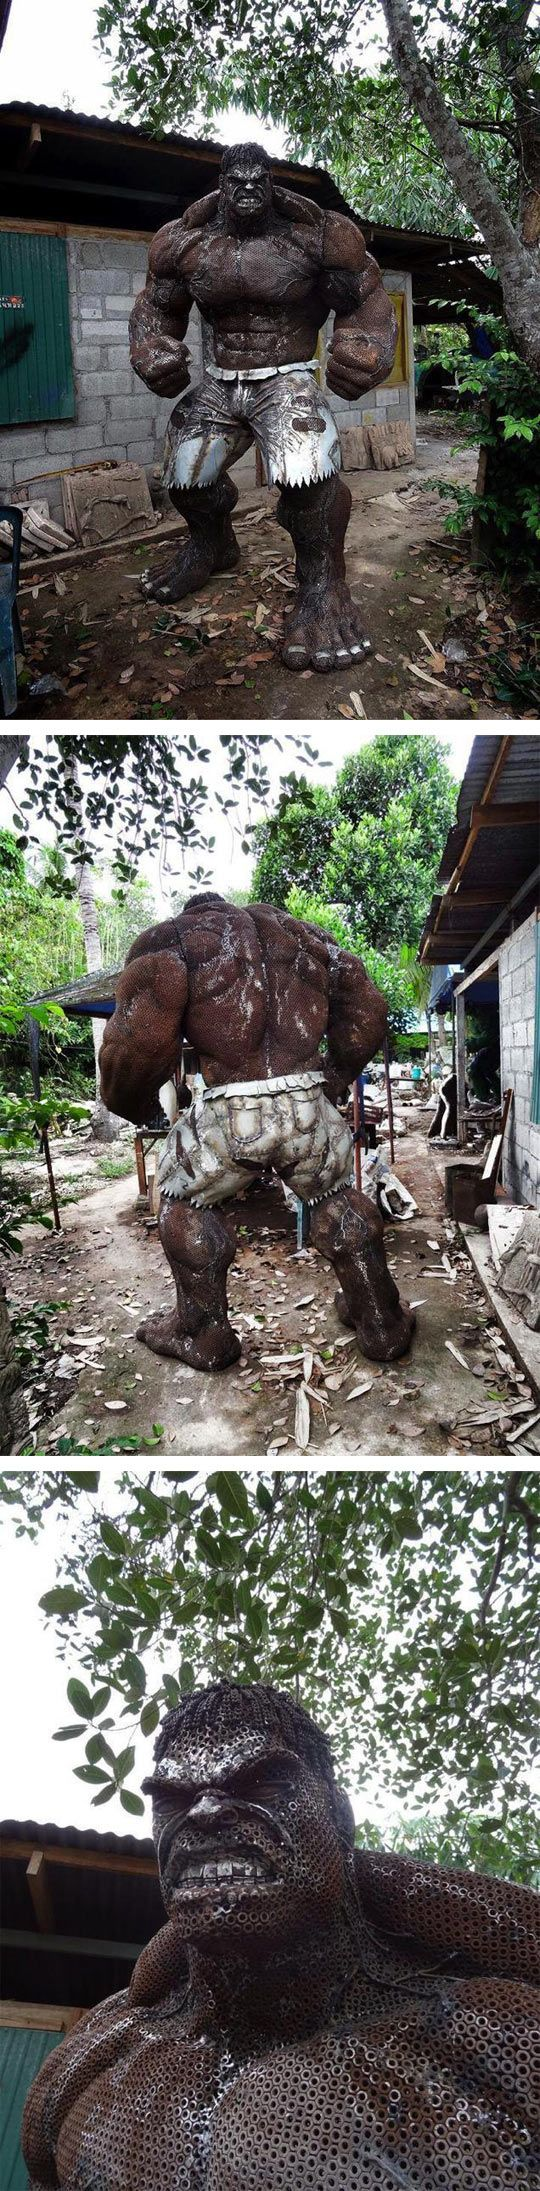 Incredible Scrap Metal Hulk ... I wonder where his home is ... He'd definitely put the  neighbor's gnomes to shame!! :)